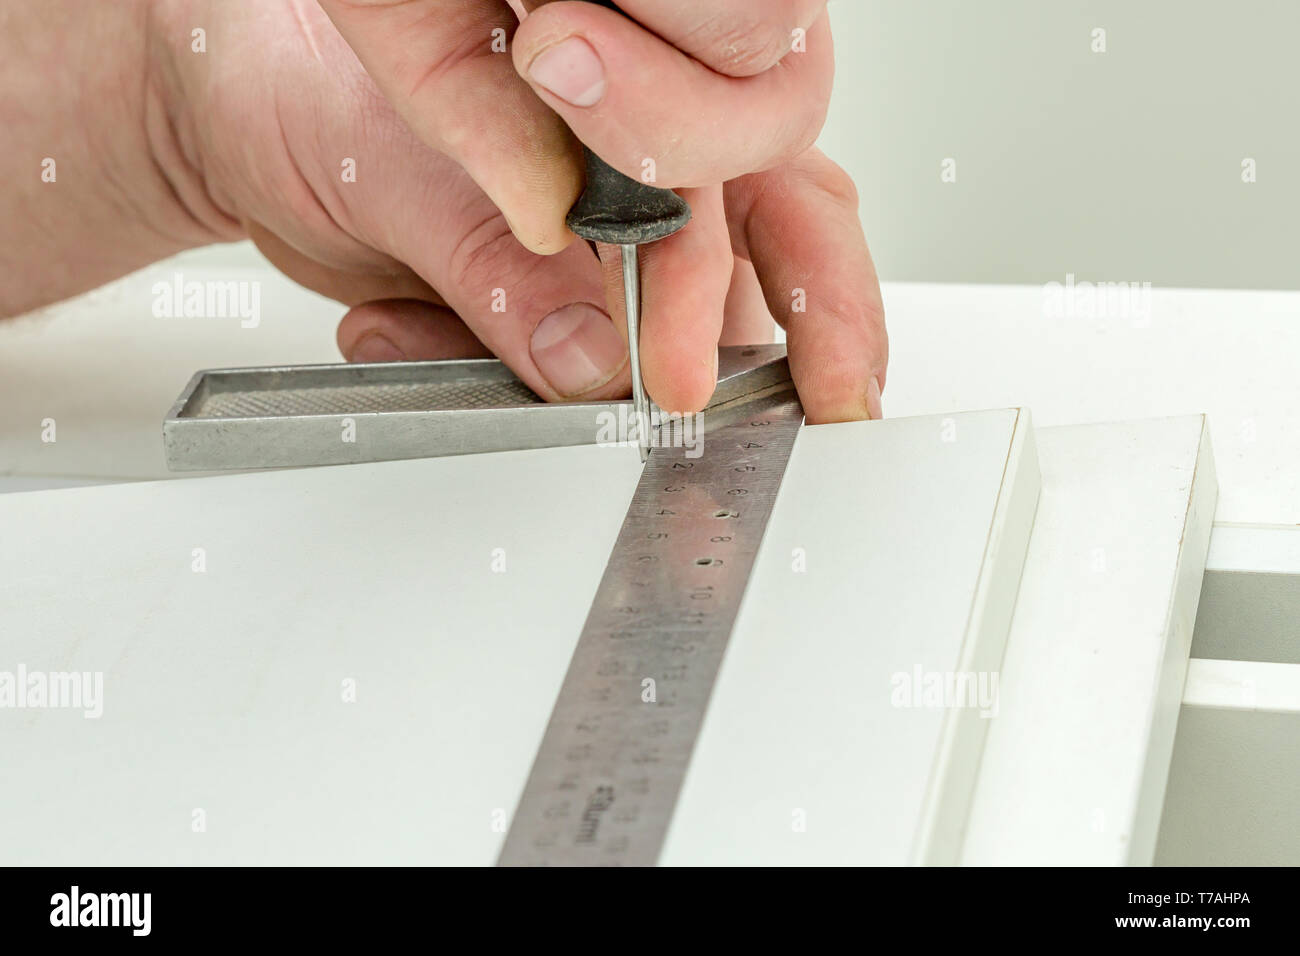 Assembly of furniture, makes holes with an awl - Stock Image